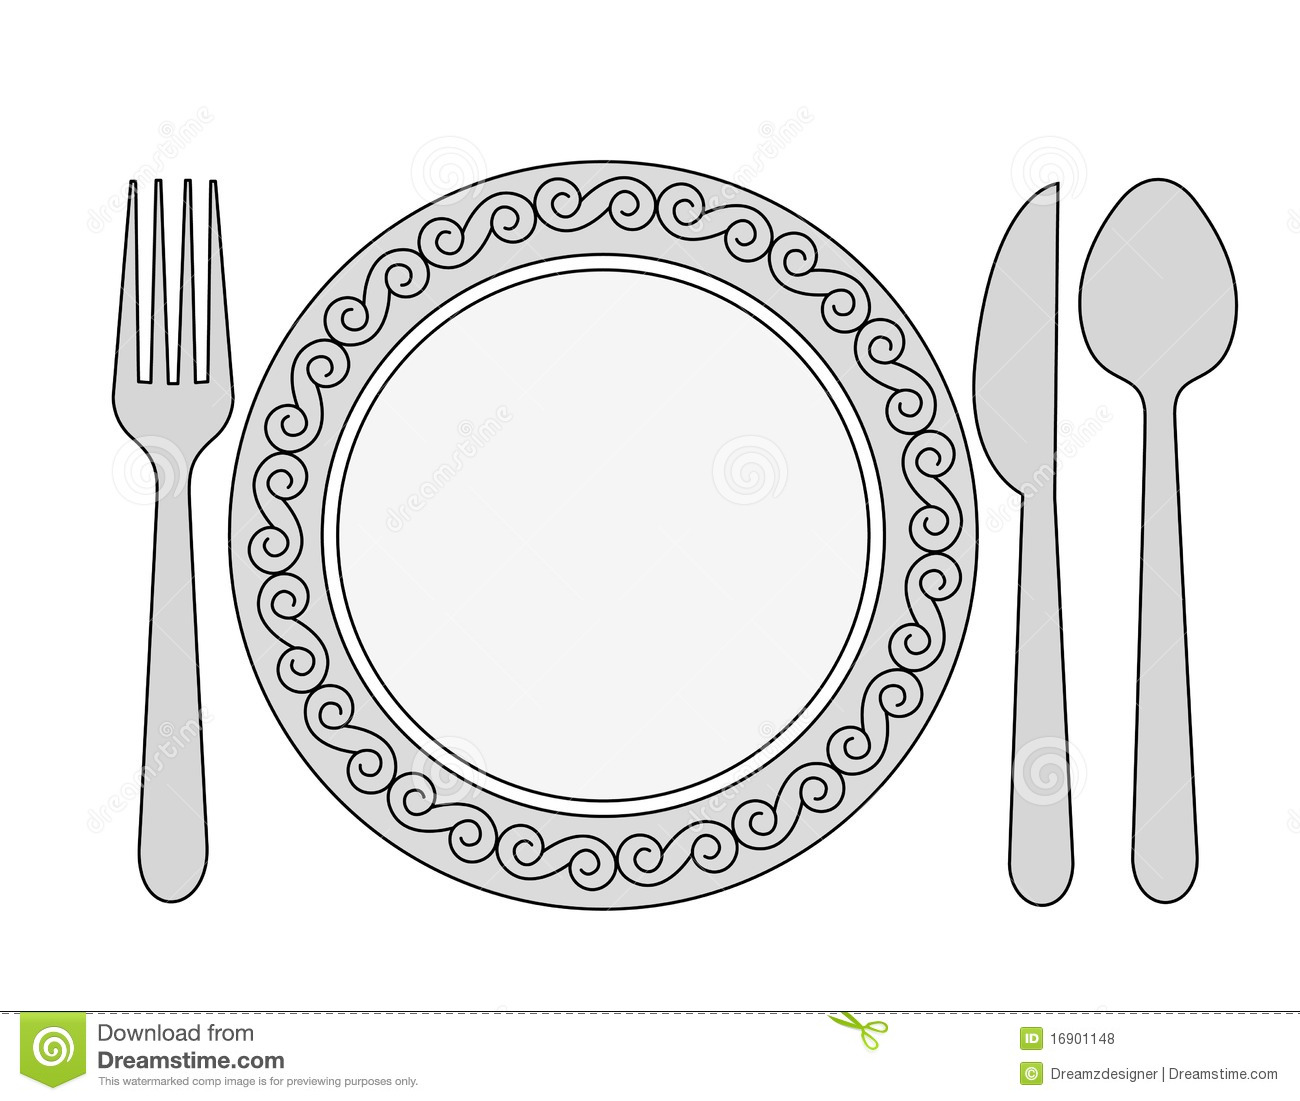 Ogniwo Volty likewise World Biomes Map moreover Royalty Free Stock Photos Dinner Invitation Image16901148 further Inspirational Arrow Cuttable Designs furthermore Glock 19 Exploded Diagram. on blank table